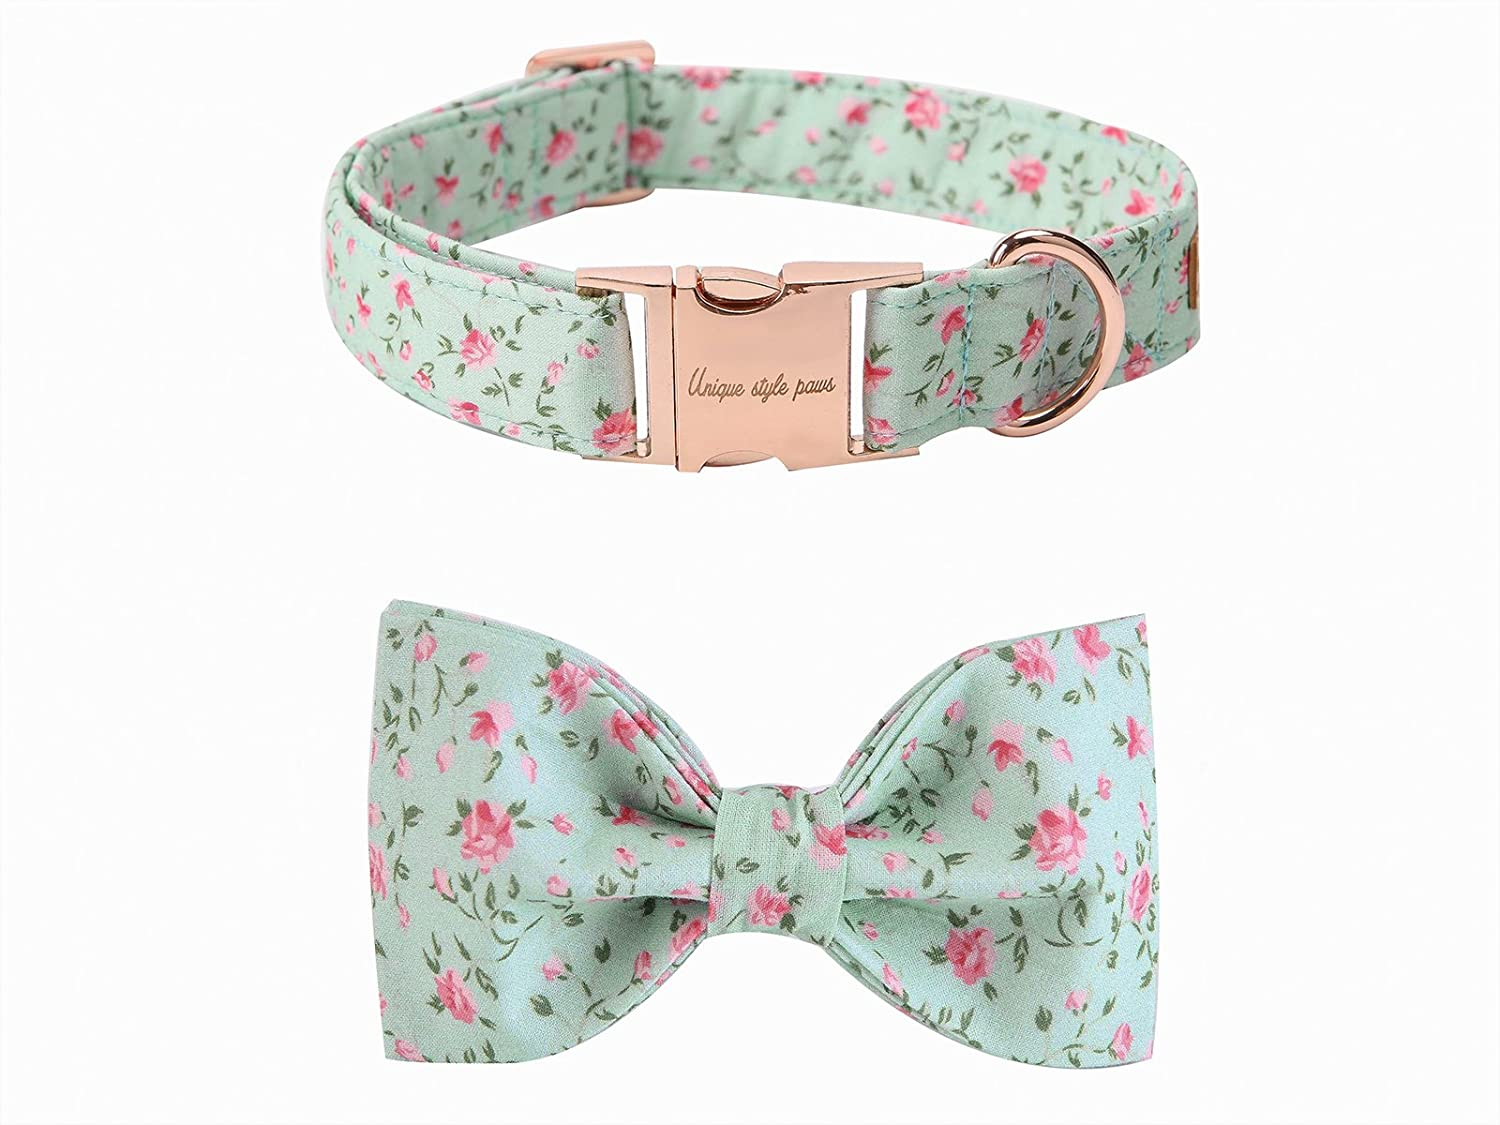 Flower XLargePet Soft &Comfy Bowtie Dog Collar And Cat Collar Pet Gift For Dogs And Cats 6 Size And 7 Patterns